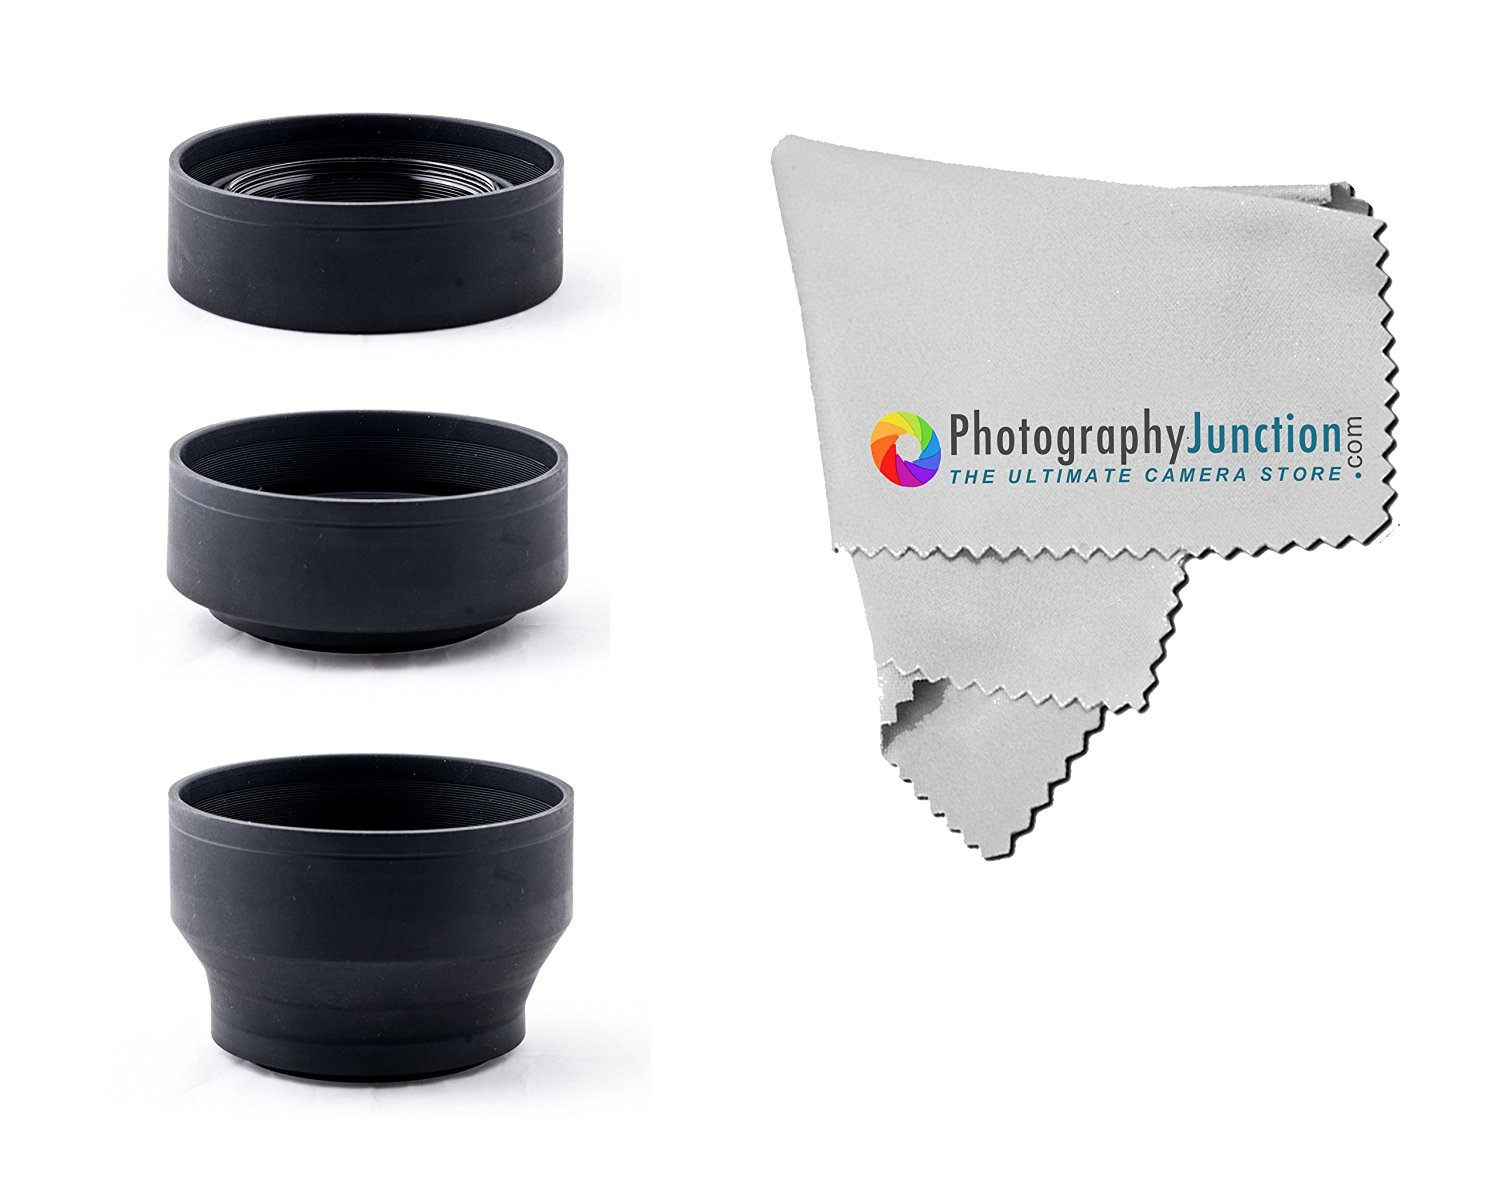 Photography Junction 55mm Collapsible Rubber Lens Hood Premium Micro Fiber Cloth for SONY Alpha Series A99 A77 A65 A58 A57 A55 A390 A100 DSLR Cameras